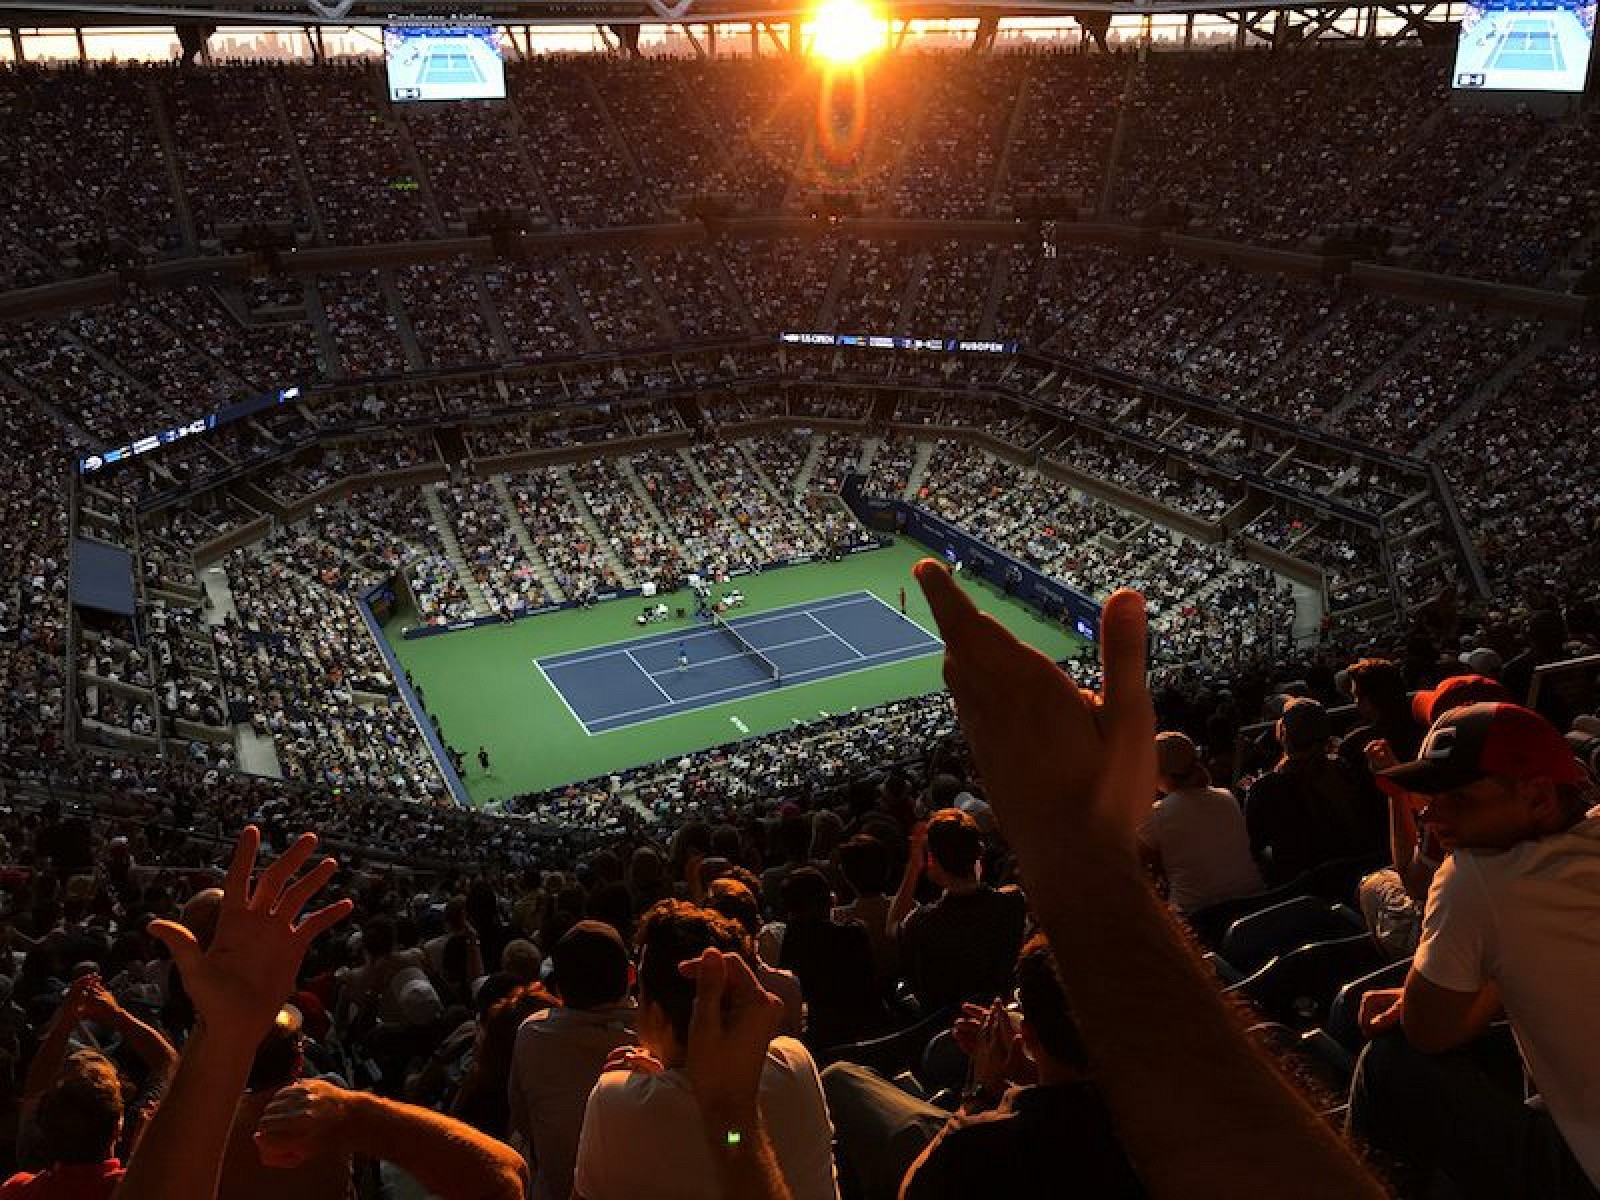 usopen_iphone_034-800x600